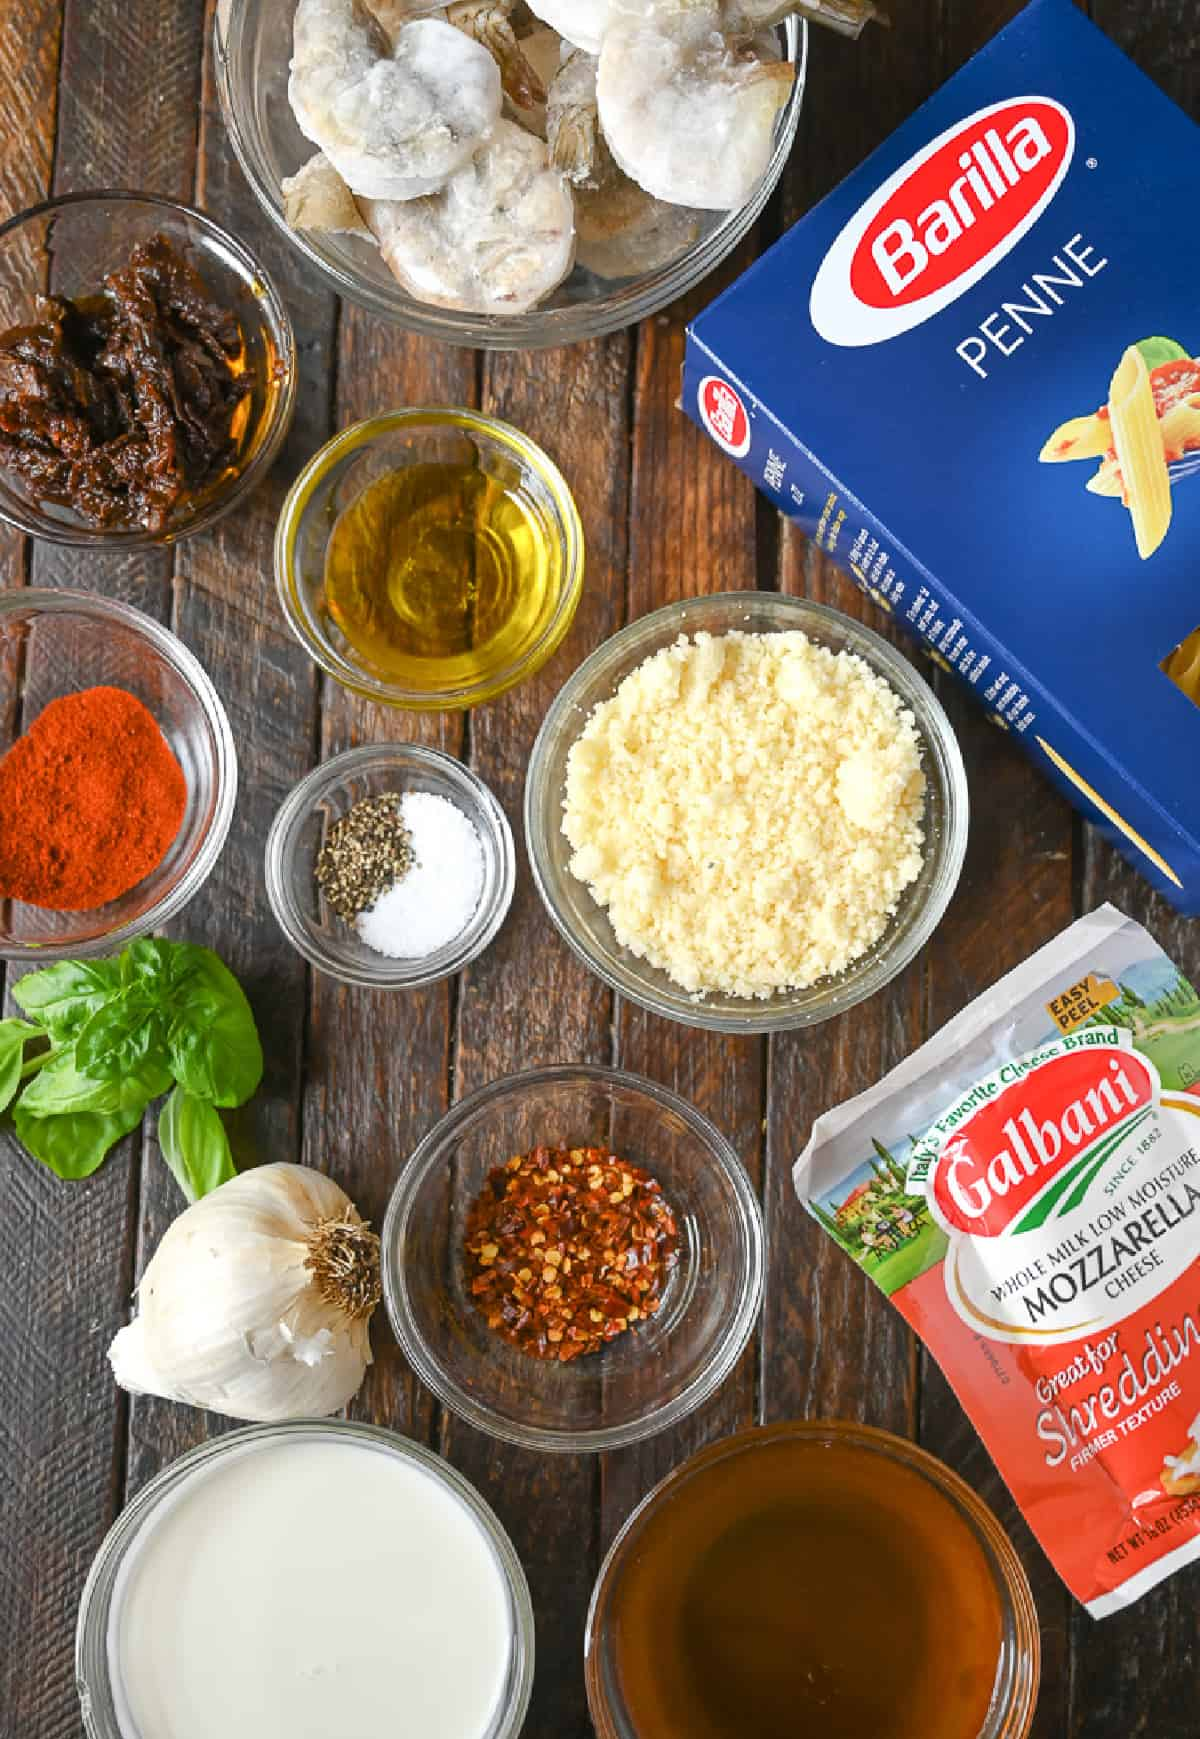 All the individual ingredients needed for this recipe.